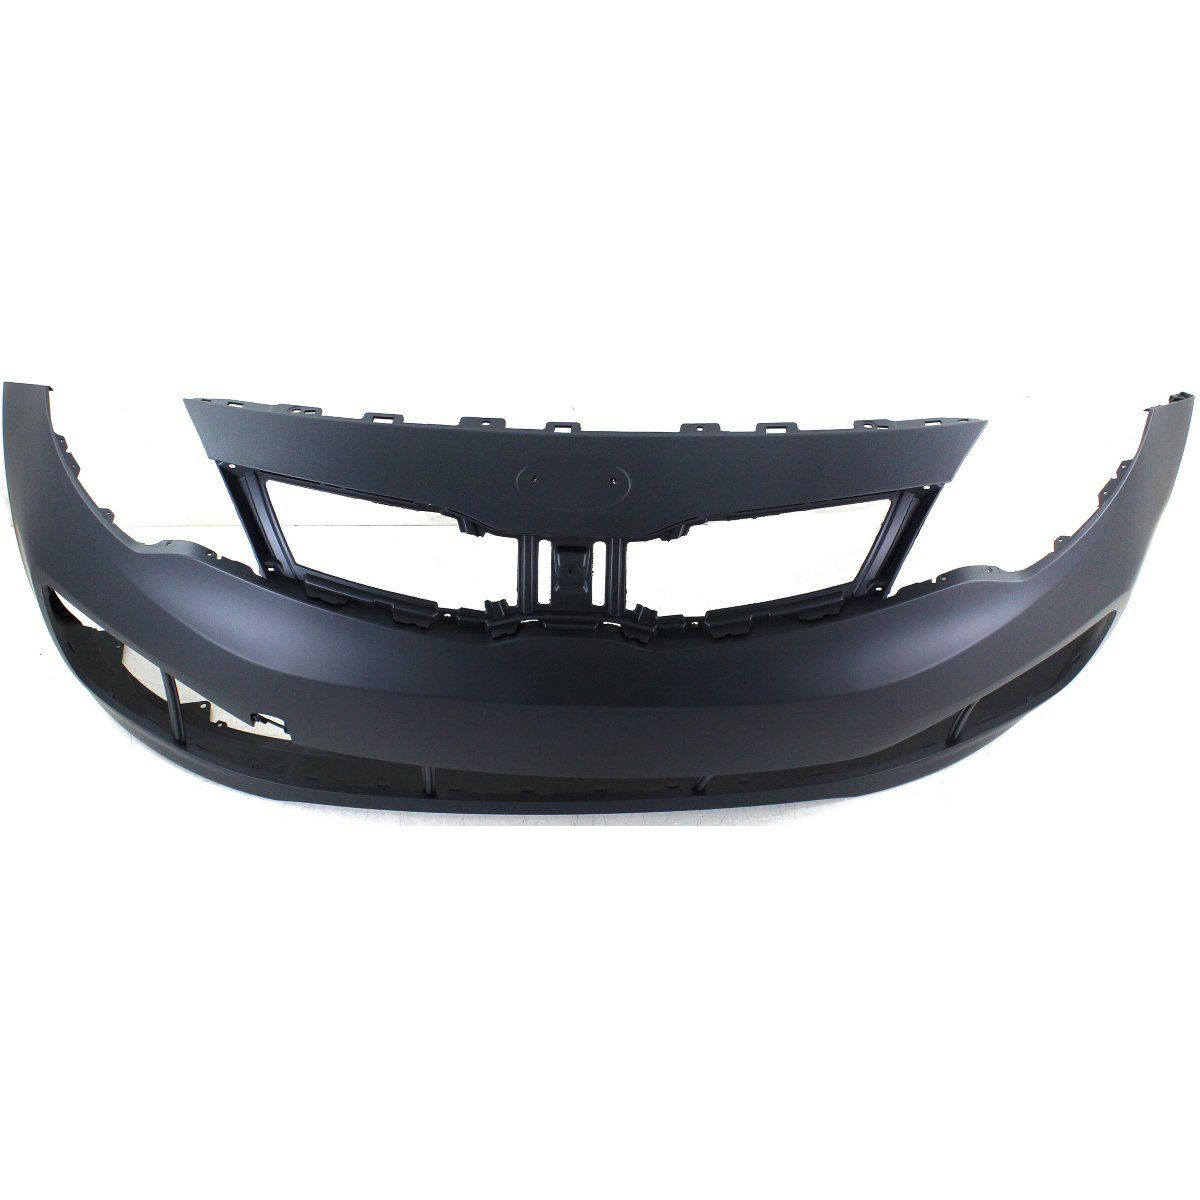 2012-2015 KIA RIO Front Bumper Cover Sedan Painted to Match